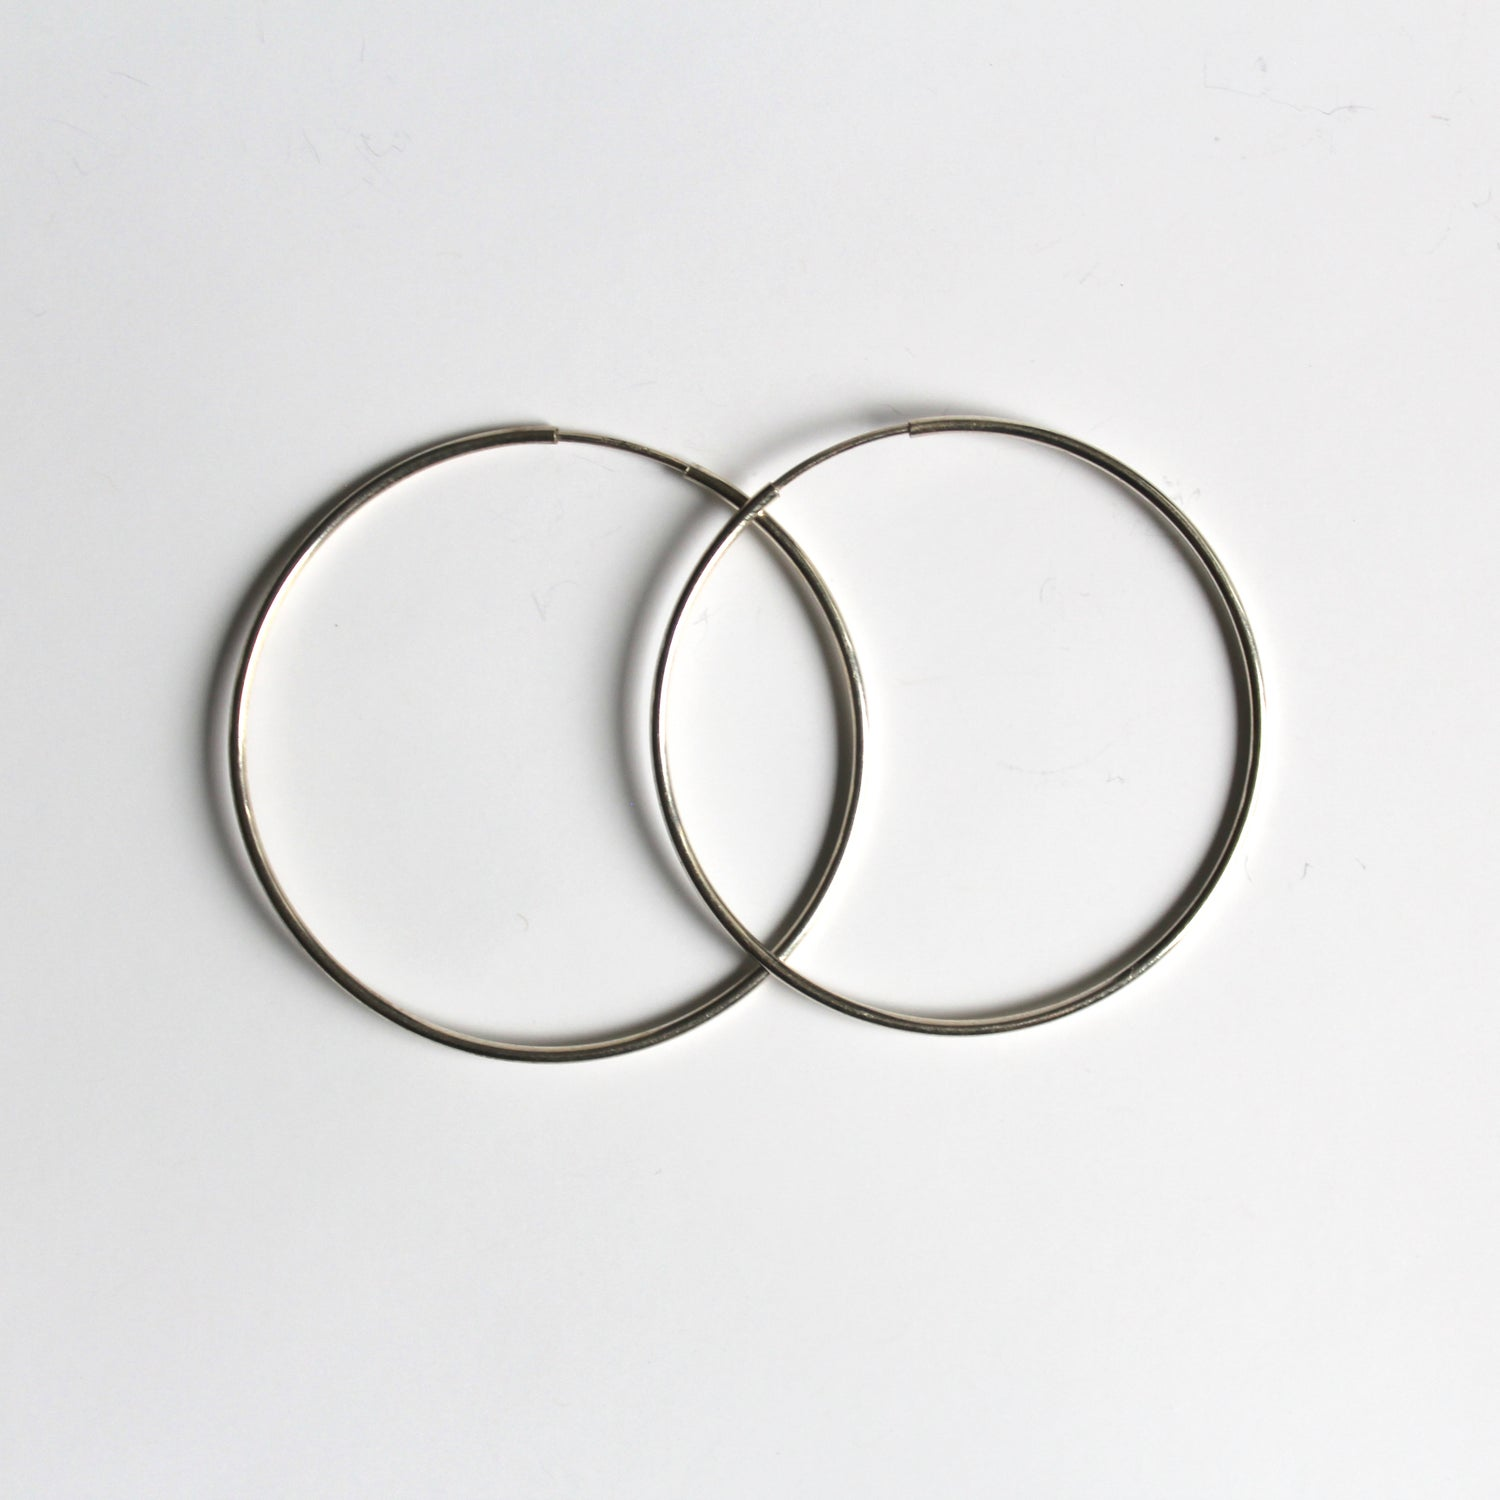 Image of Medium Sterling Silver Endless Hoop Earrings